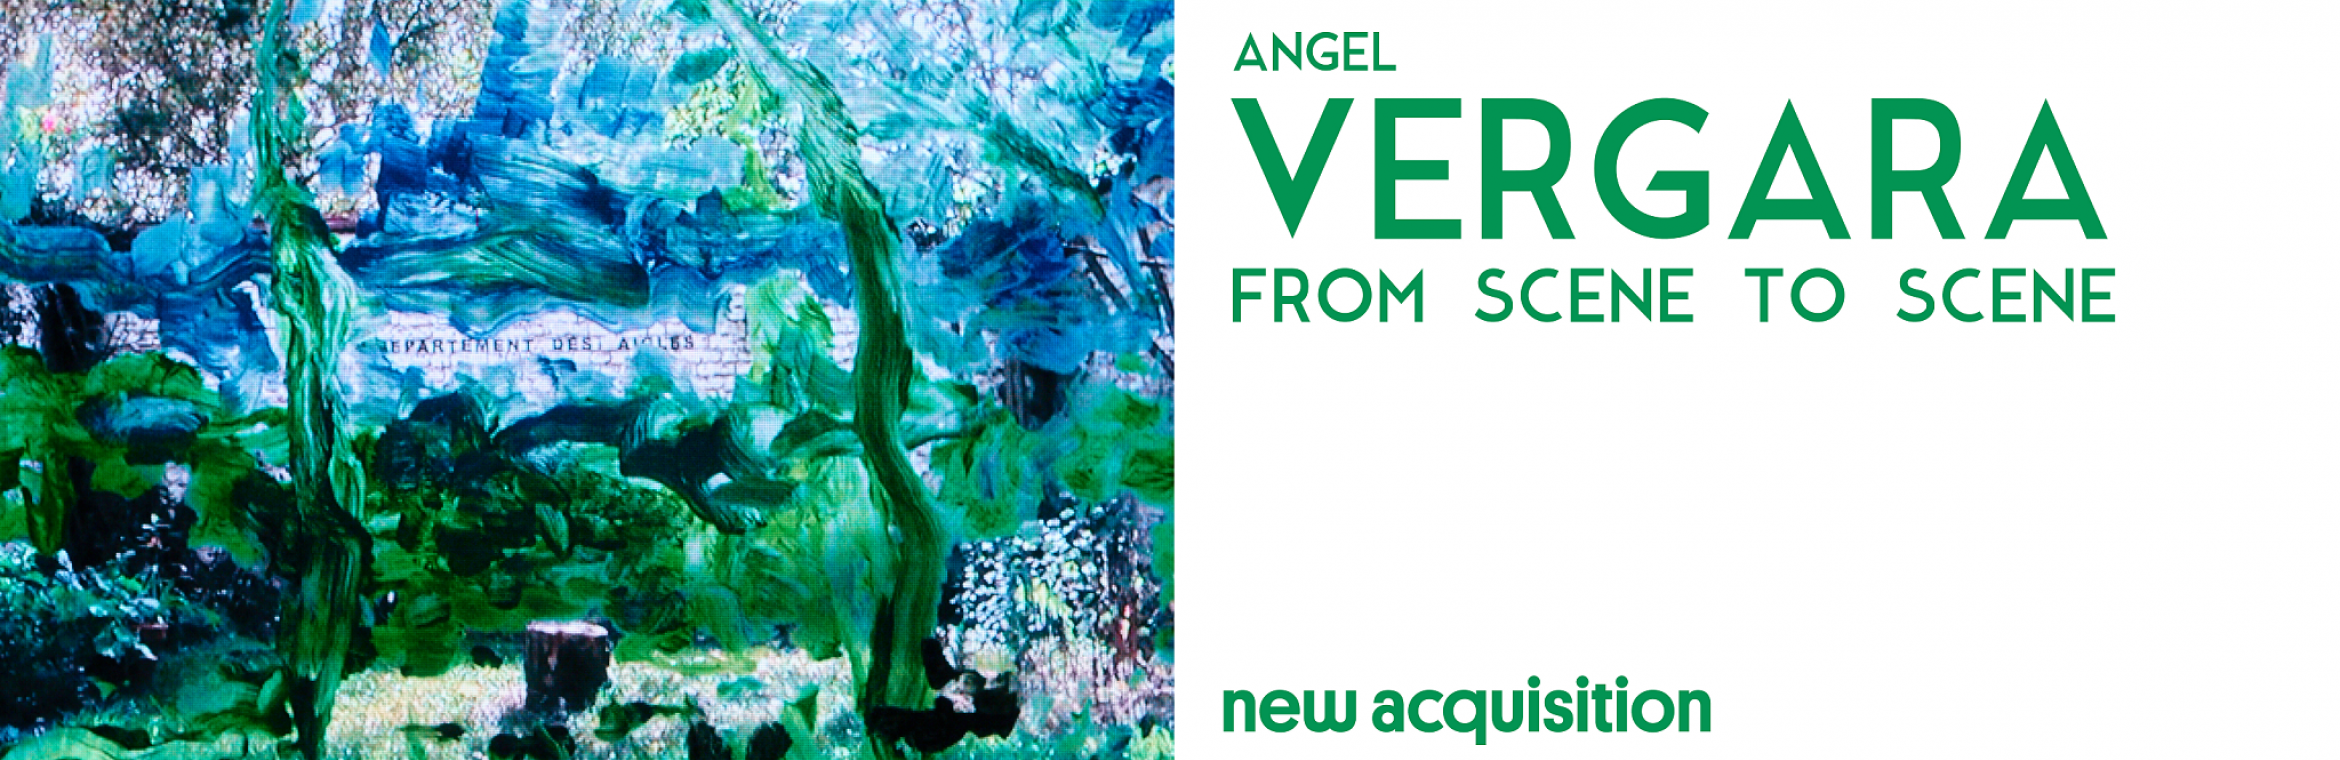 New acquisition: Angel Vergara, From Scene to Scene